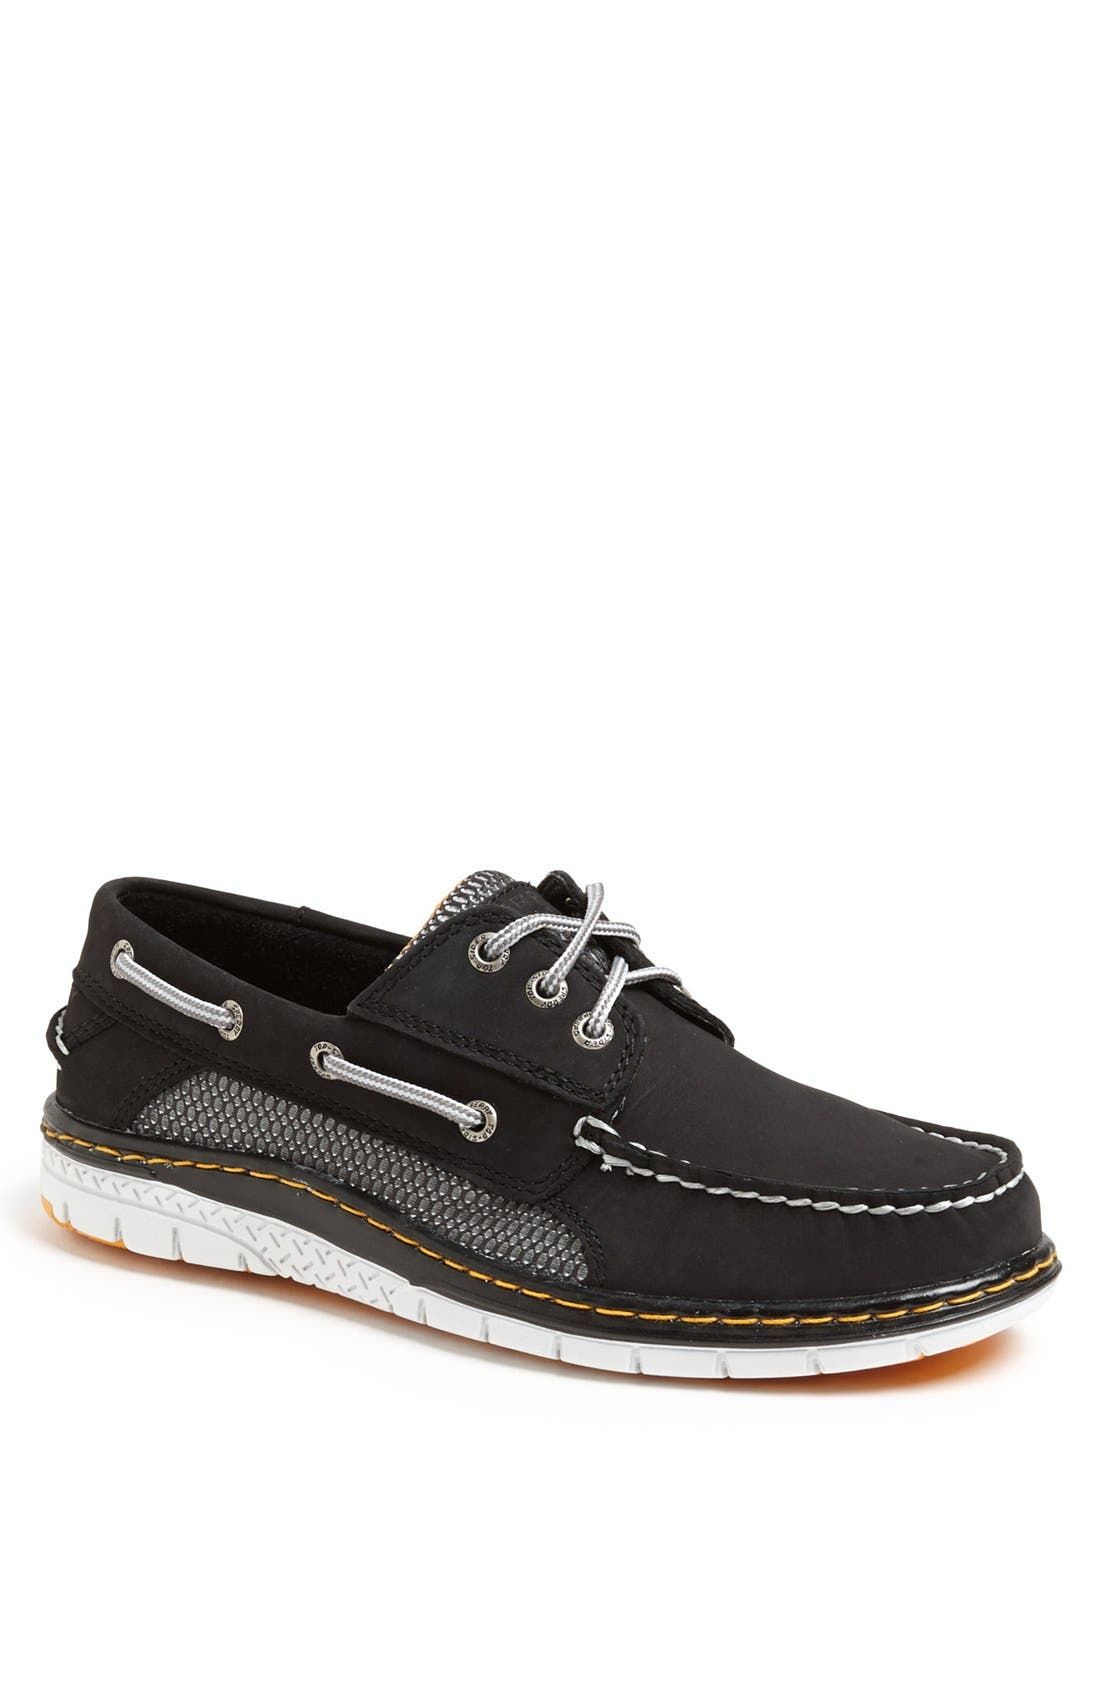 'Billfish Ultralite' Boat Shoe,                             Main thumbnail 1, color,